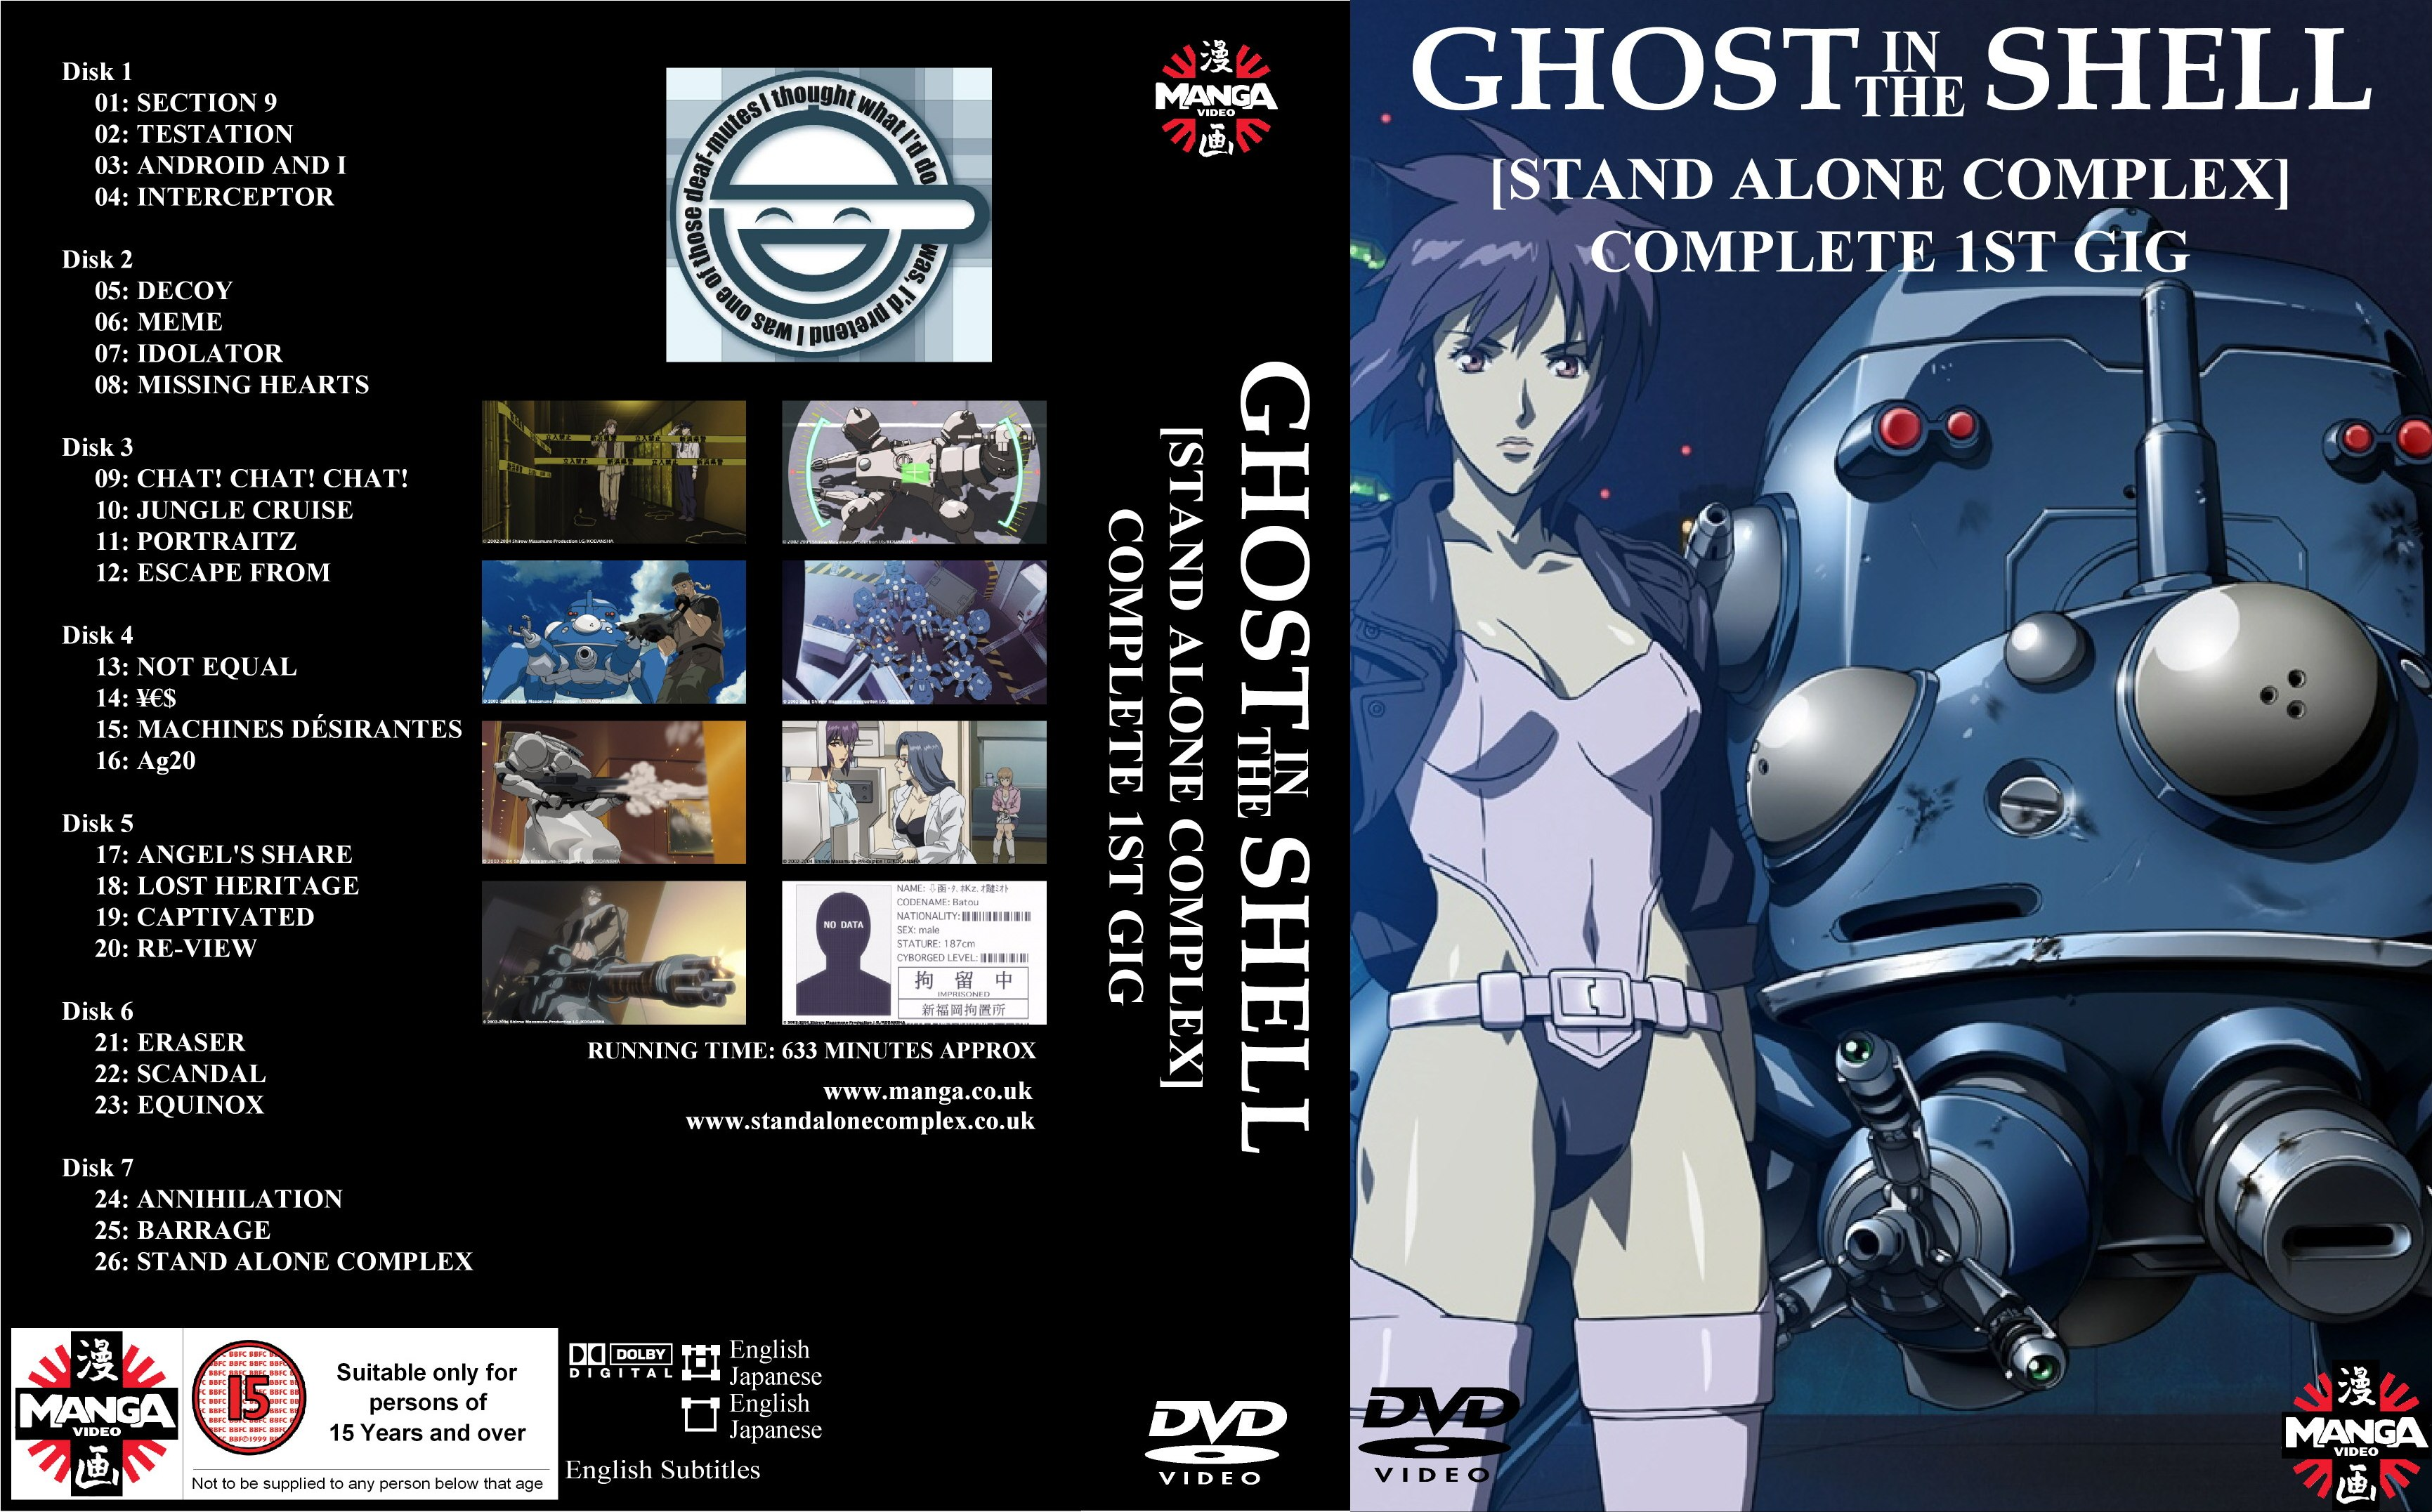 Ghost In The Shell - Stand Alone Complex 1st GIG (2002) DvdRip .mp4 ITA